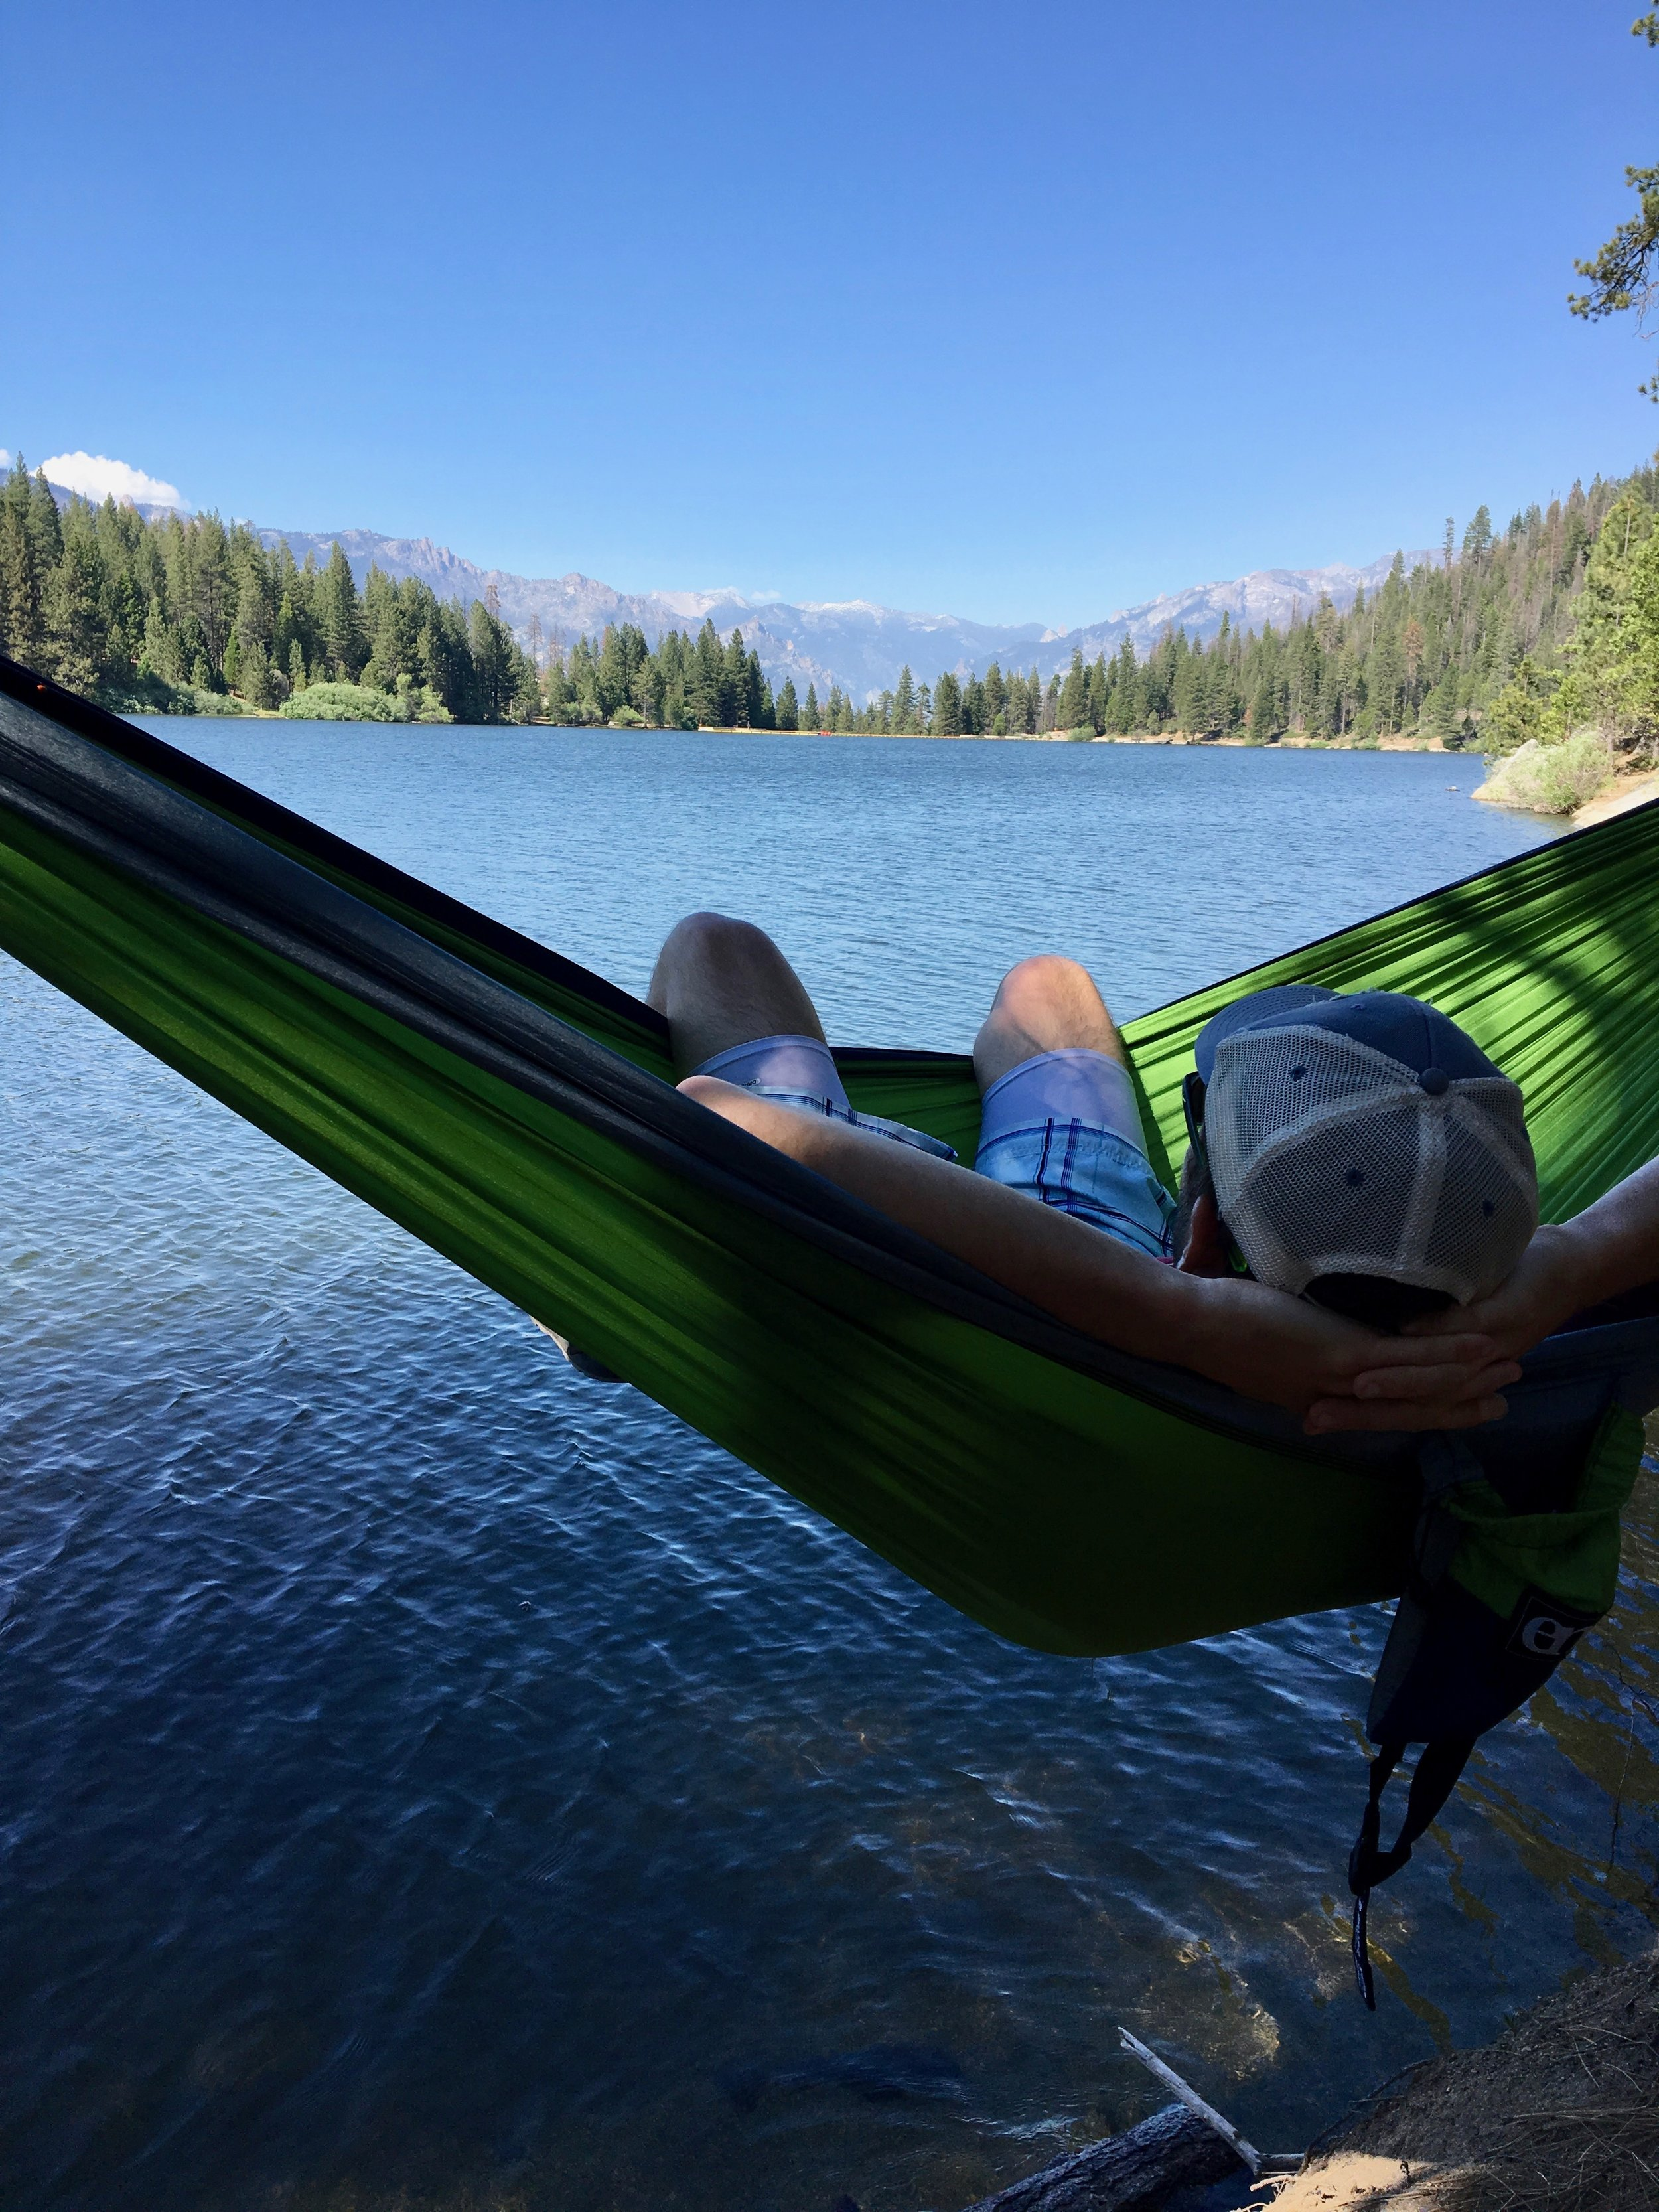 Hume_Lake_Hammock.jpeg